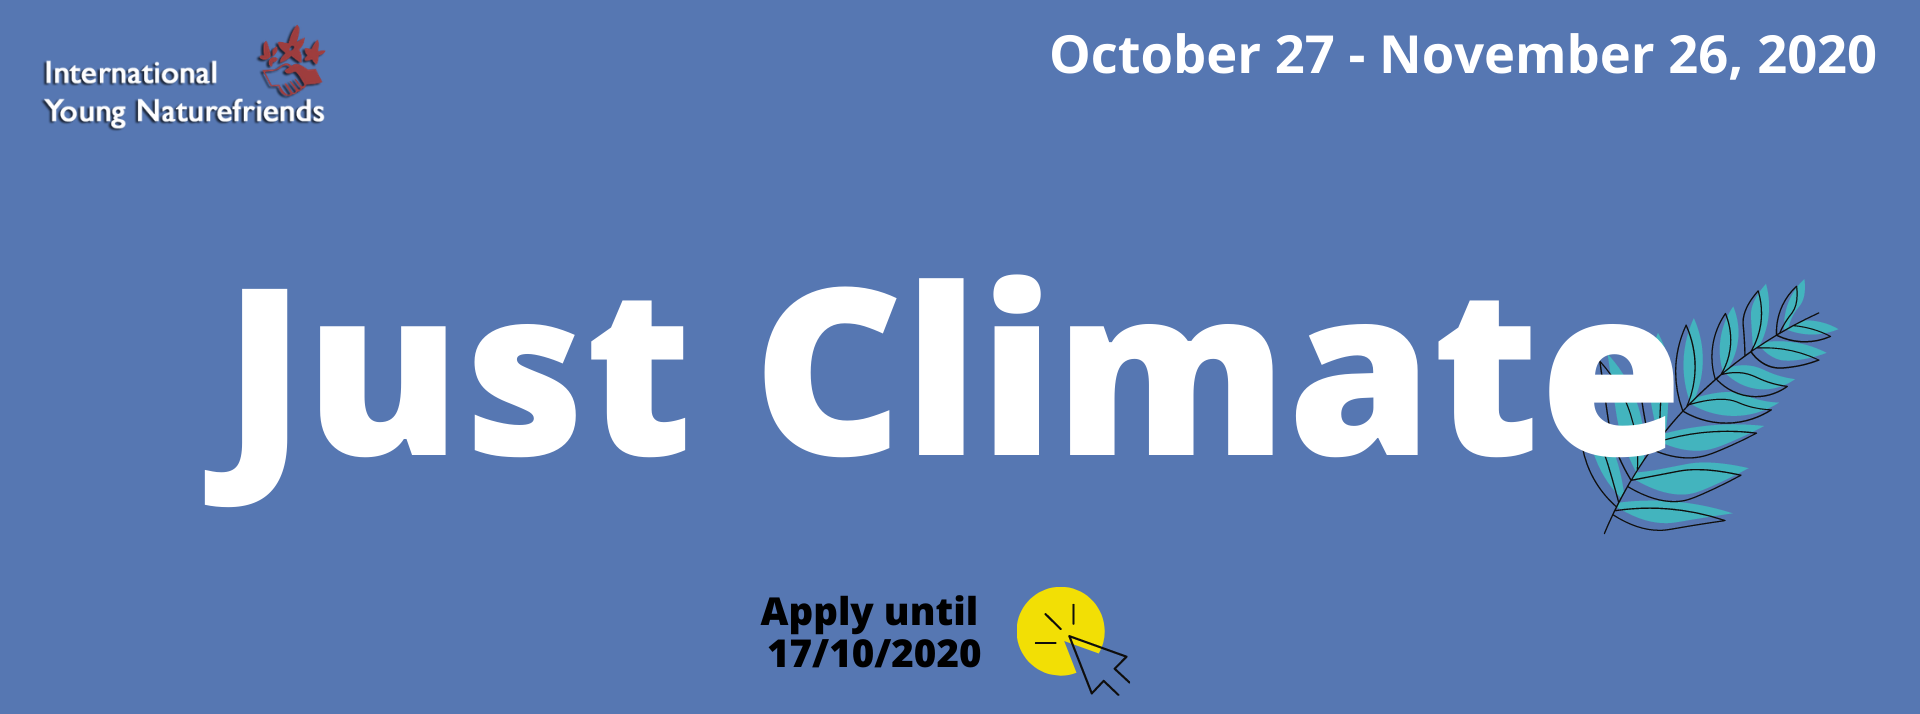 Just Climate - apply for online training